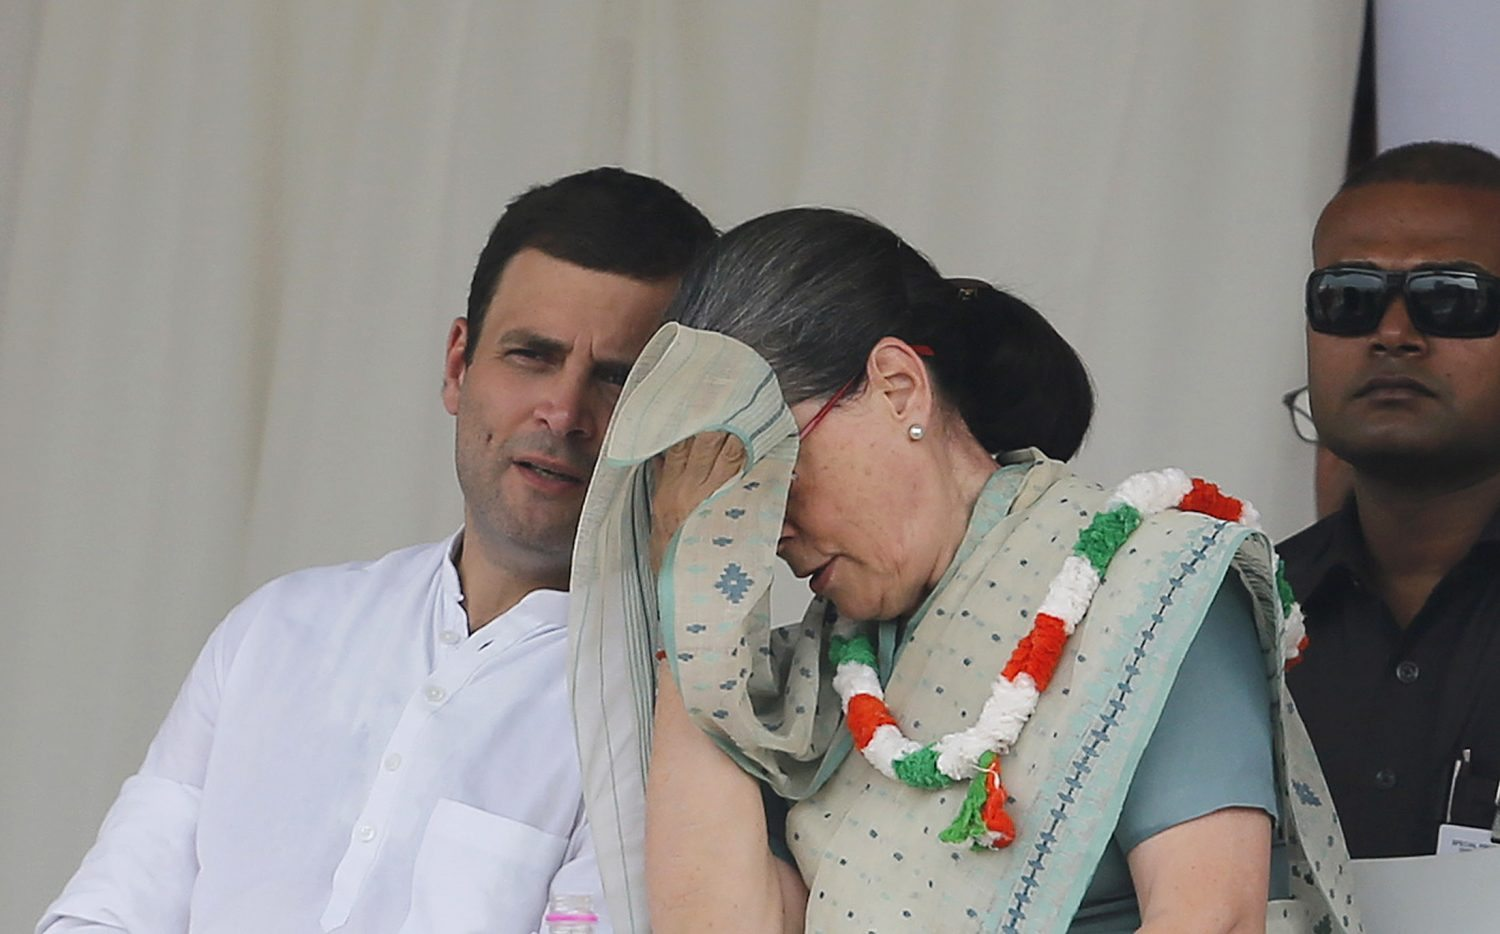 India's Congress party president Sonia Gandhi wipes her sweat as party's vice-president Rahul Gandhi (L) watches during a farmers rally at Ramlila ground in New Delhi, India, September 20, 2015. REUTERS/Adnan Abidi - RTS1Z5K